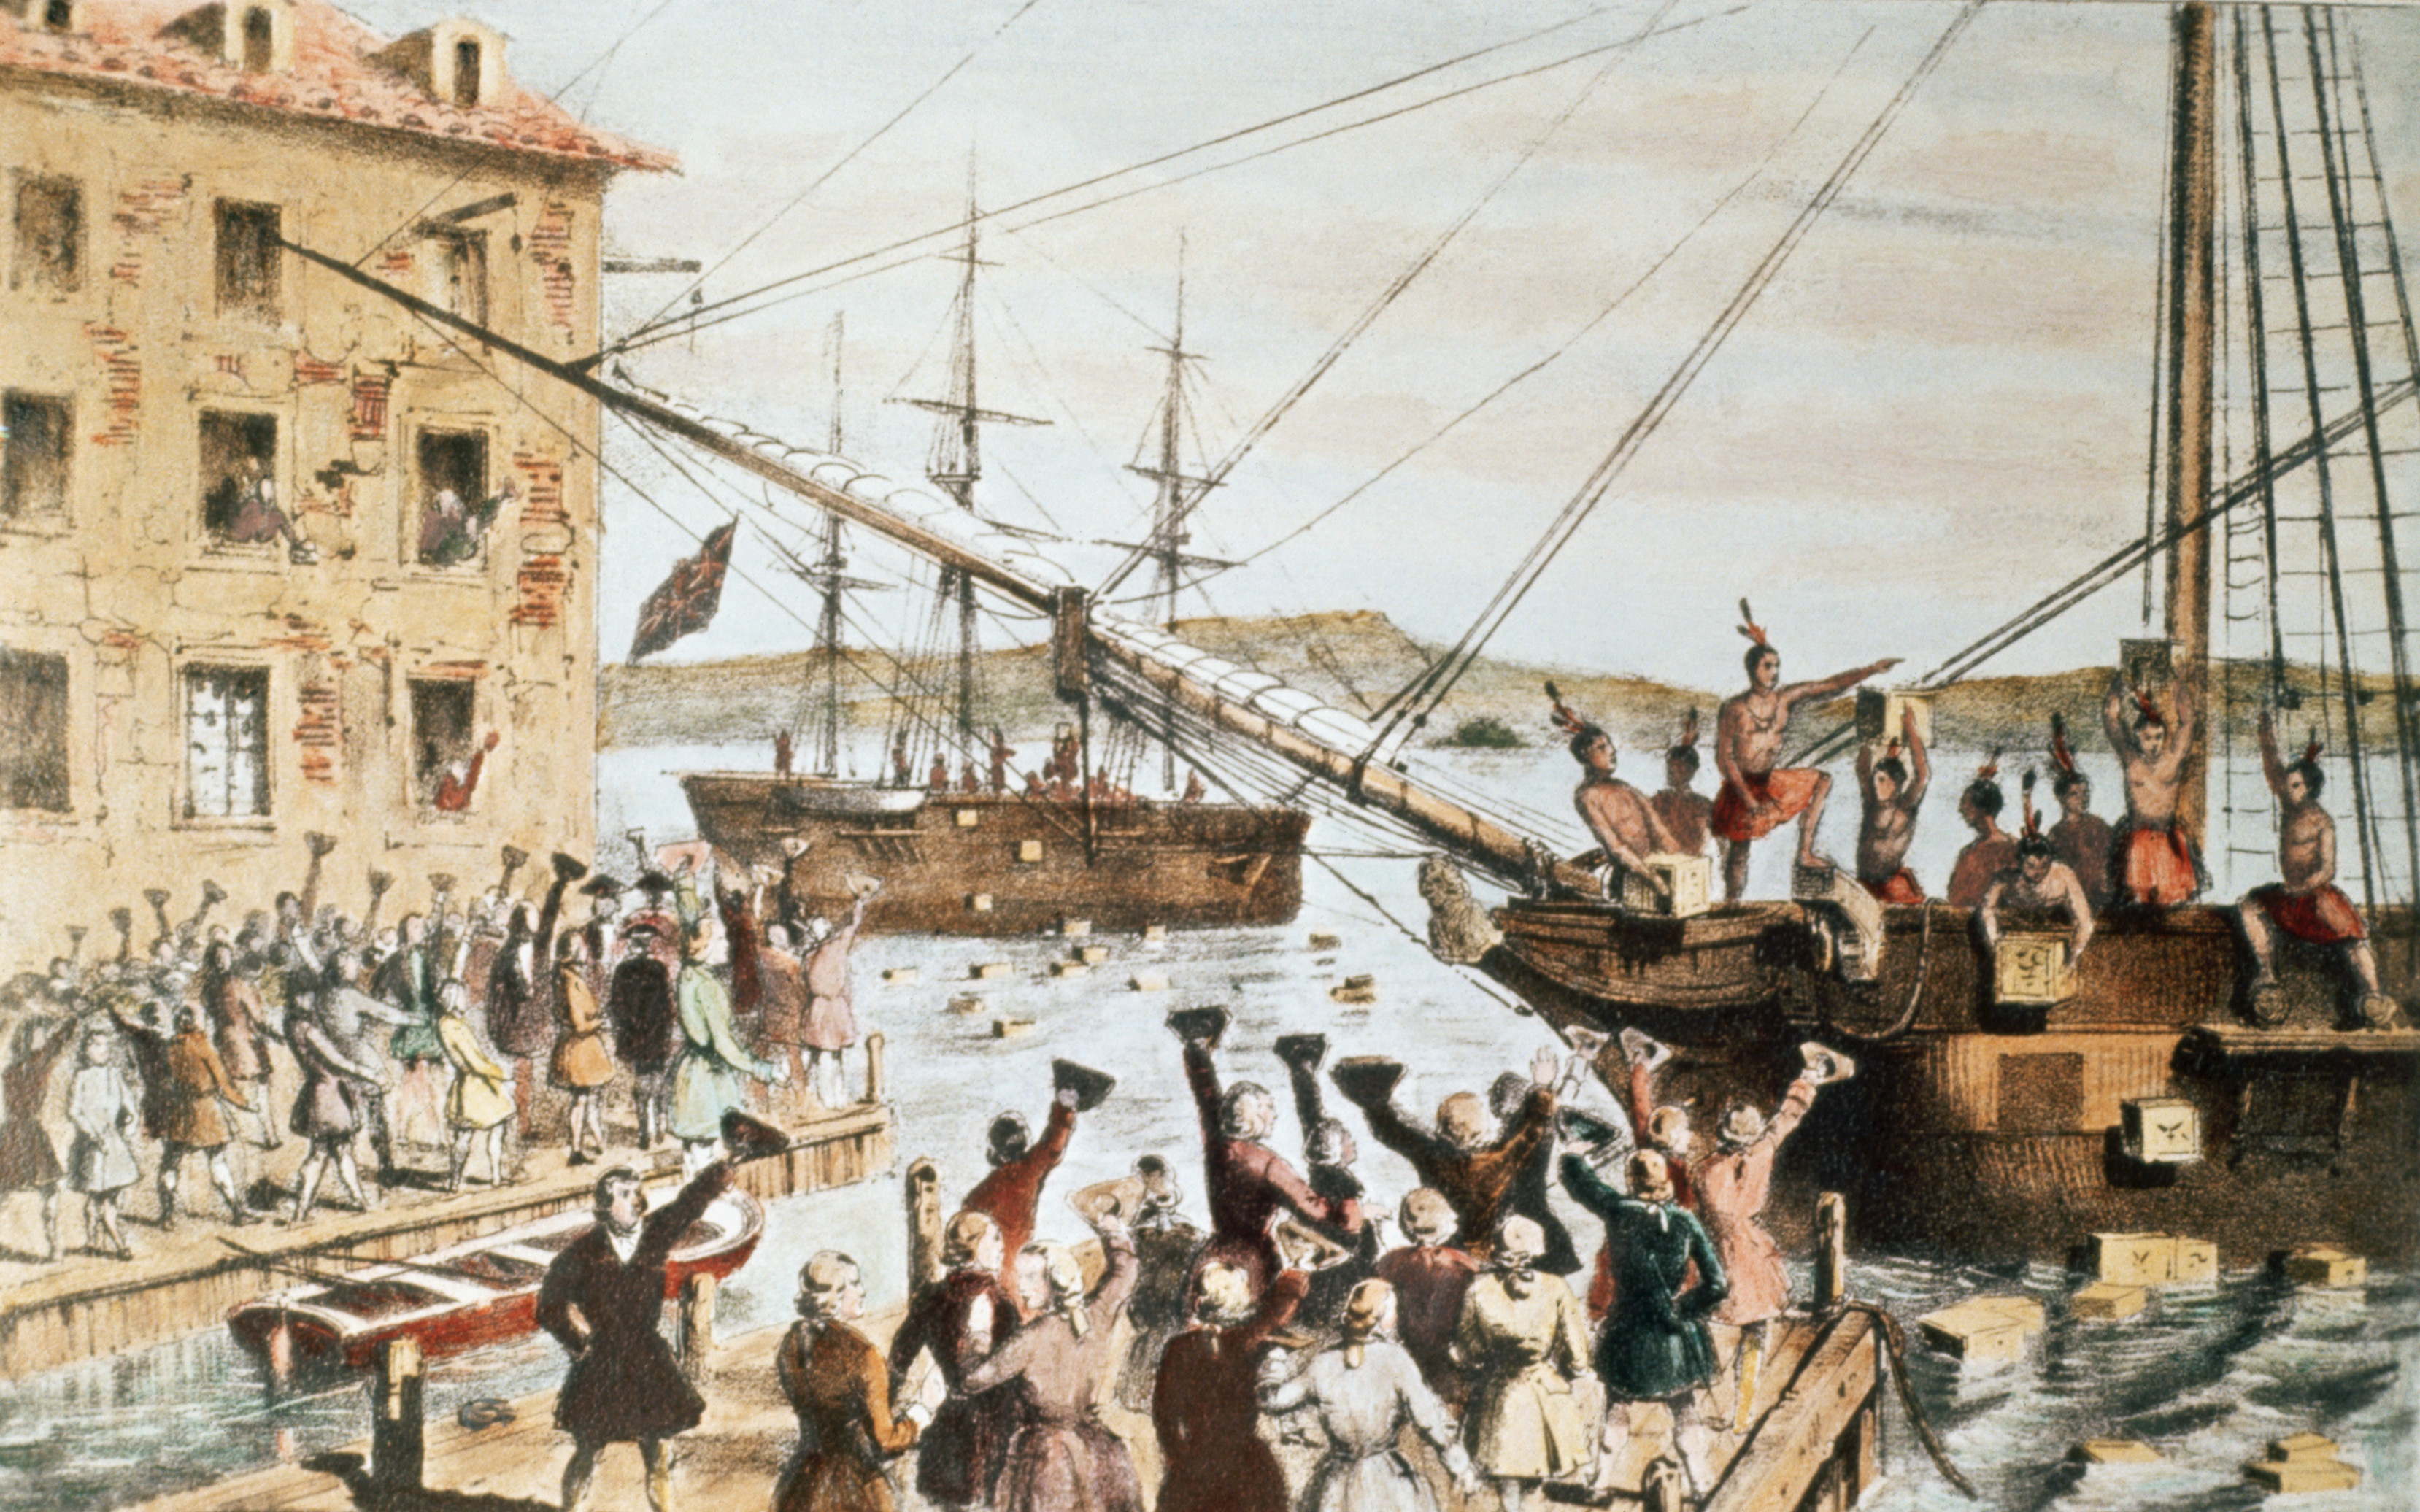 american revolution causes youre welcome Welcome to our course you're rightbut i think the causes of a revolution will constantly be argued for importance and i am sure with the study this course has us focused on we still won't completely agree as to the one main cause of the french or haitian revolution.